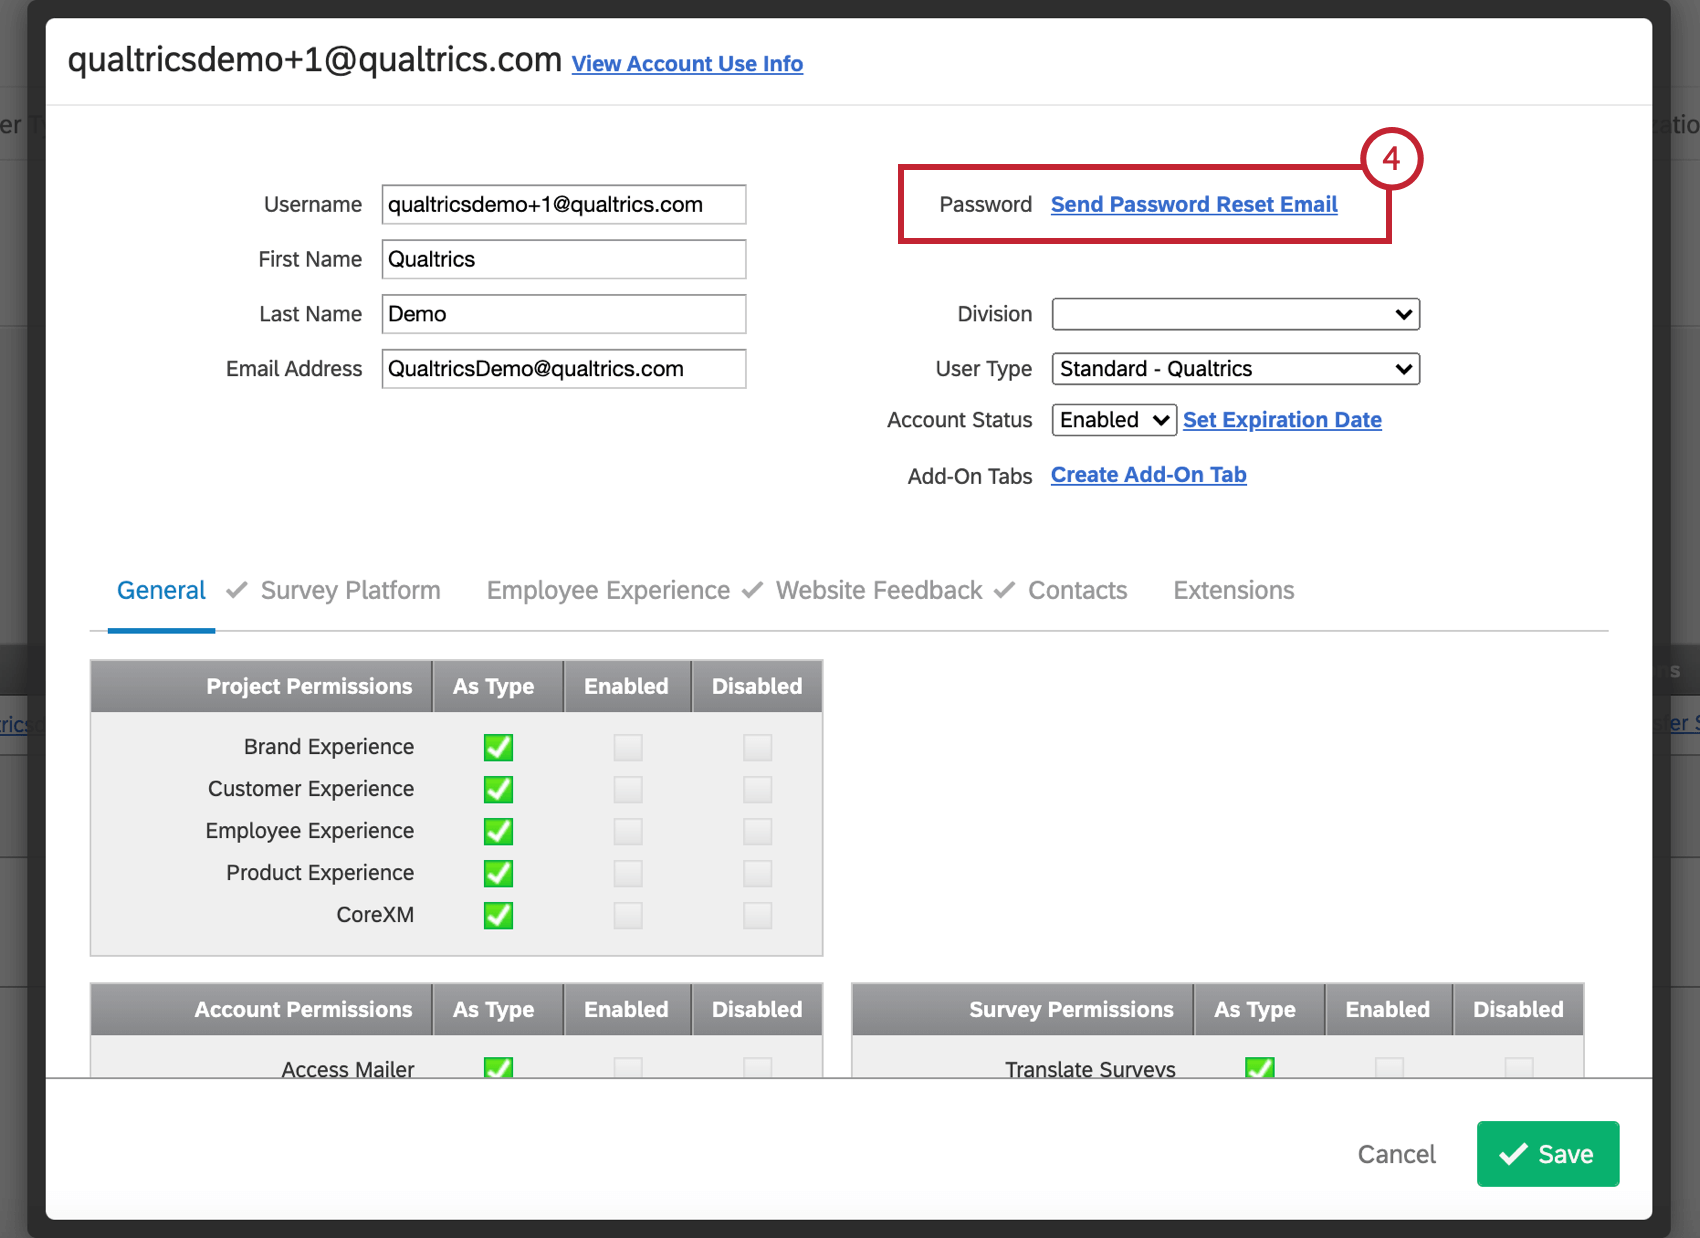 Send a password reset email button in the user settings